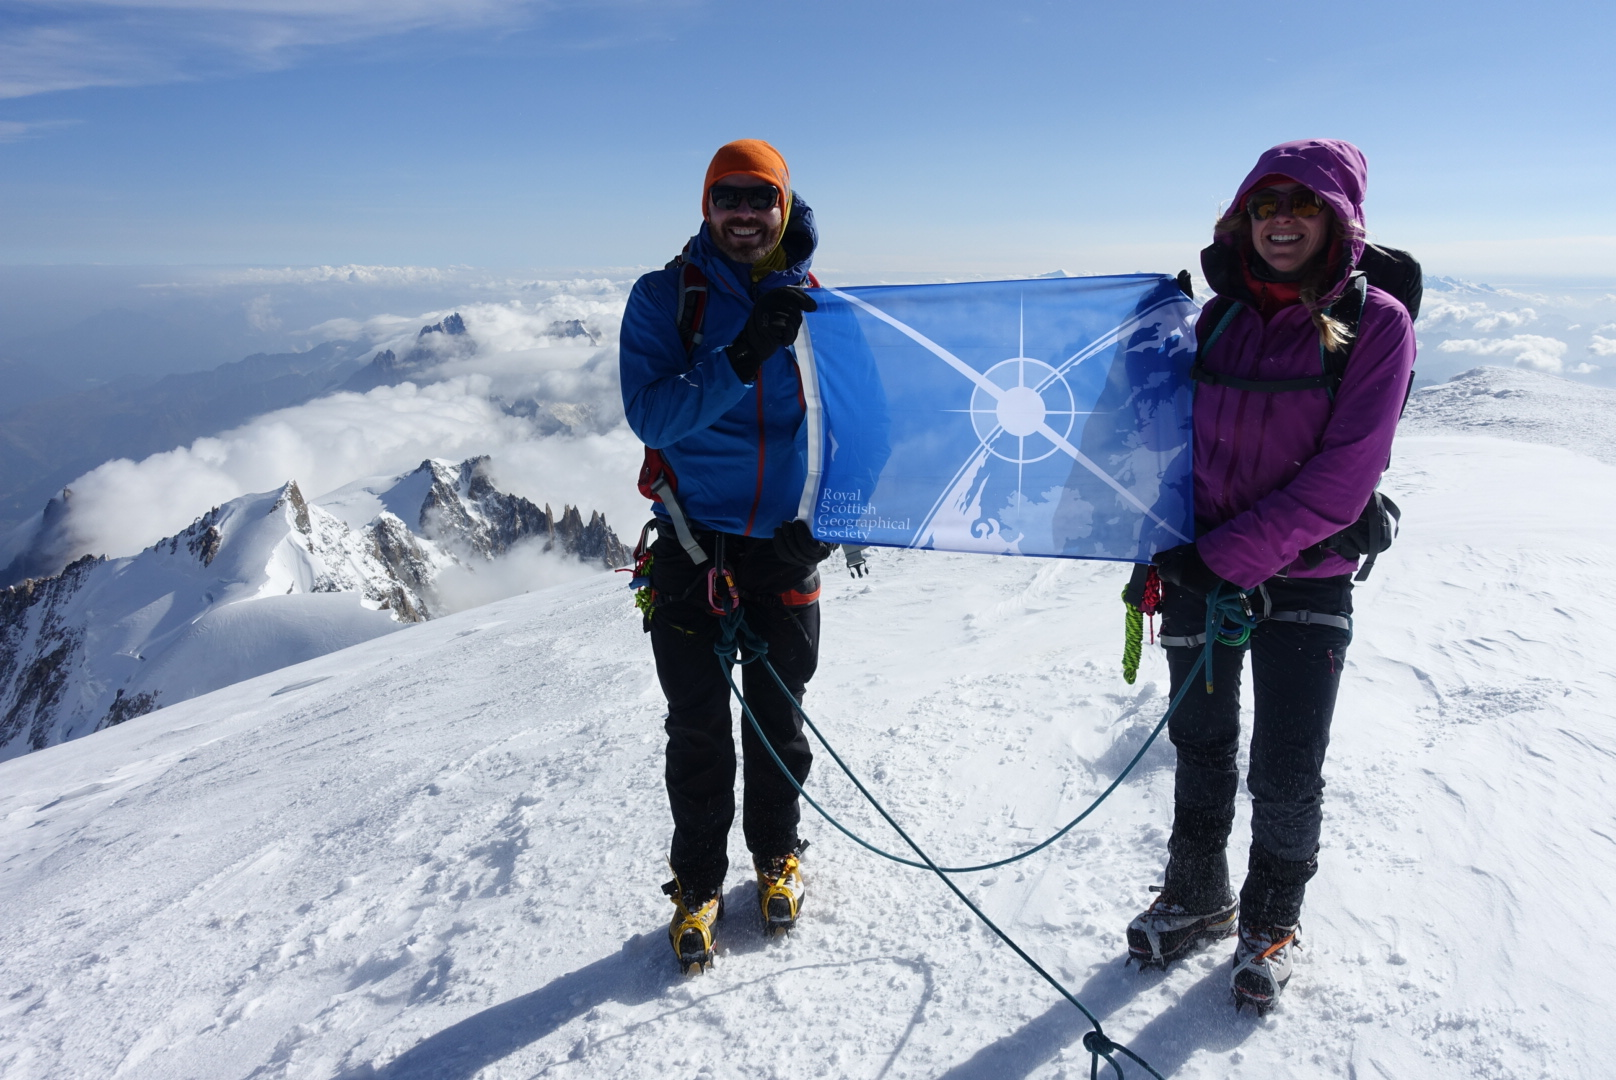 Mont Blanc and Mt Triglav  - In July 2017, Luke and Hazel successfully submitted Mont Blanc, the highest Mountain in Europe, while mountaineering in the Alps. With them to the summit they had the honour of carrying the very first Royal Scottish Geographical Society Flag.  Two years previously, together they submitted the highest peak in Slovenia, Mt Triglav.